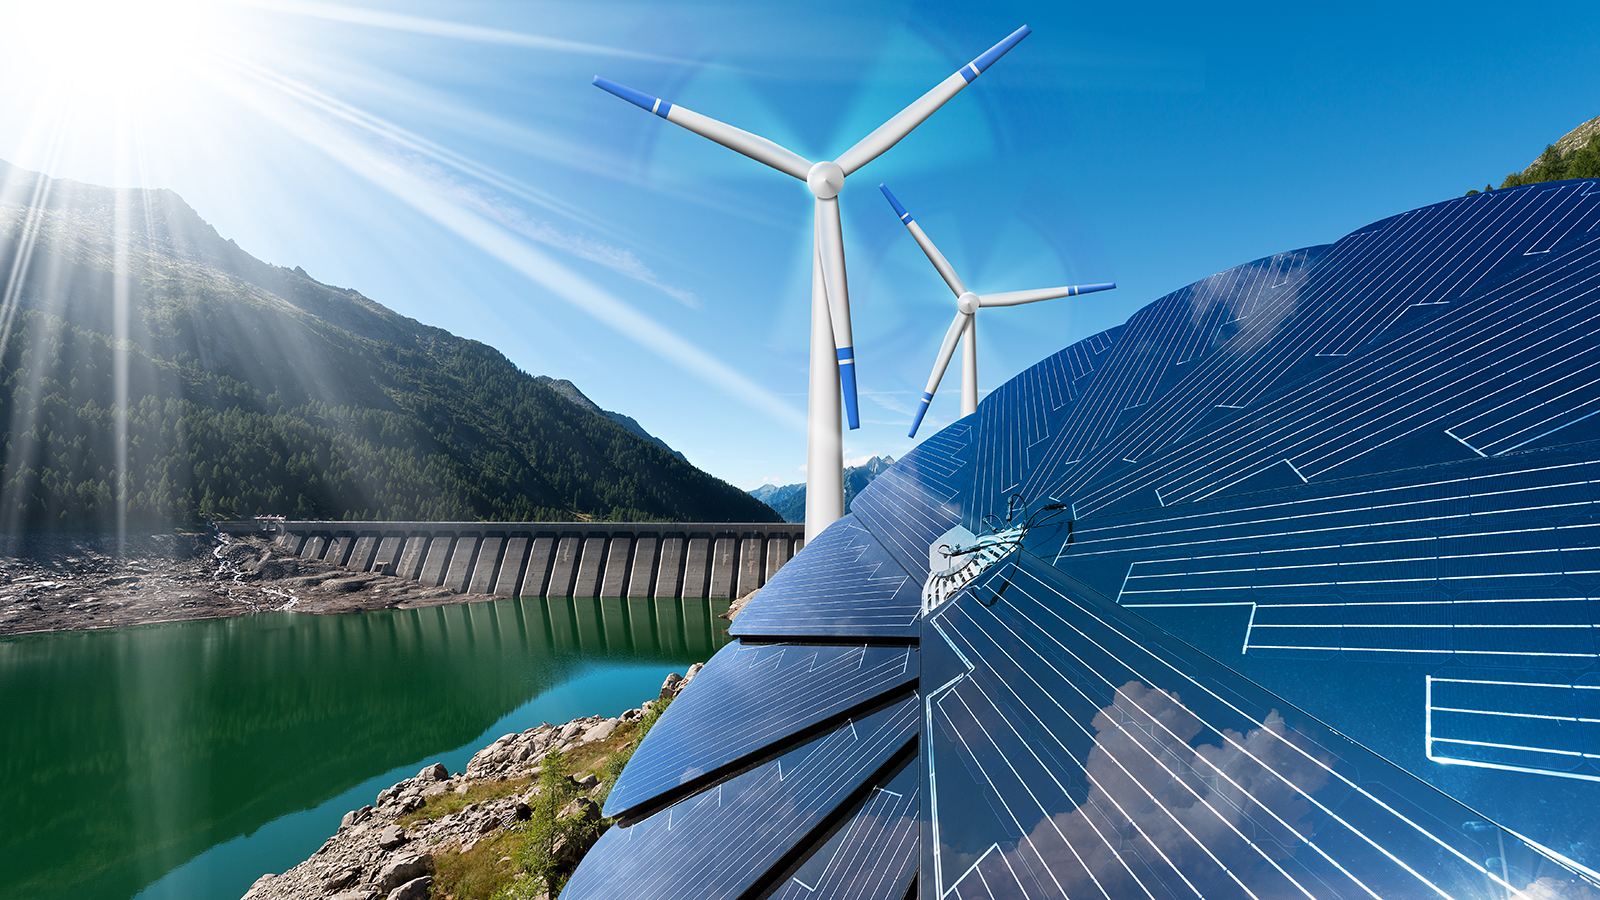 Argonne researchers are finding ways to prevent cyberattacks on distributed energy resources — e.g., solar and wind power — before they occur. (Image by Shutterstock / Alberto Masnovo.)